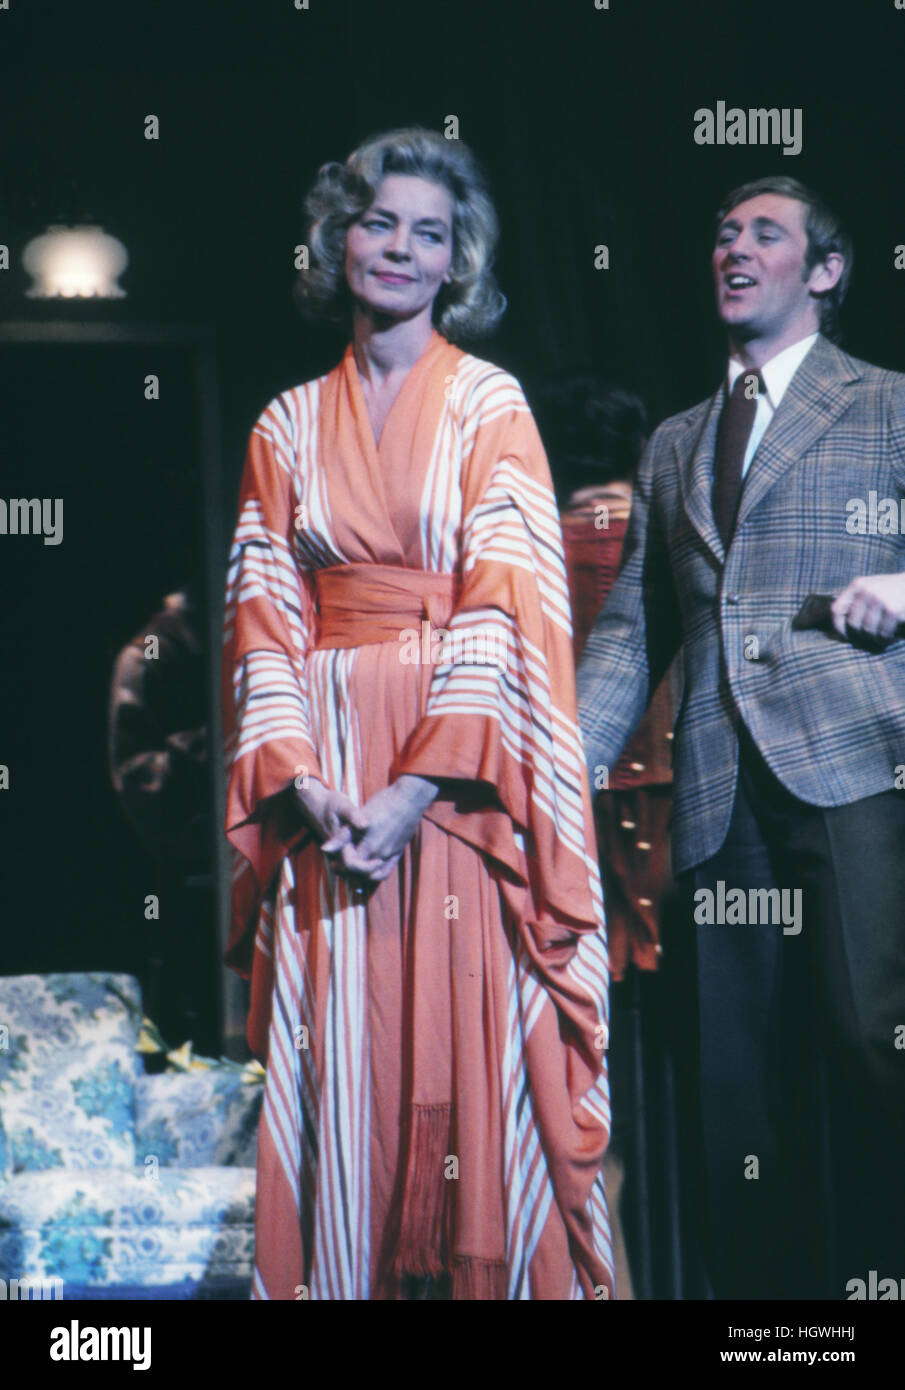 Len Cariou and Lauren Bacall, on stage in the 1970 Broadway musical Applause. - Stock Image